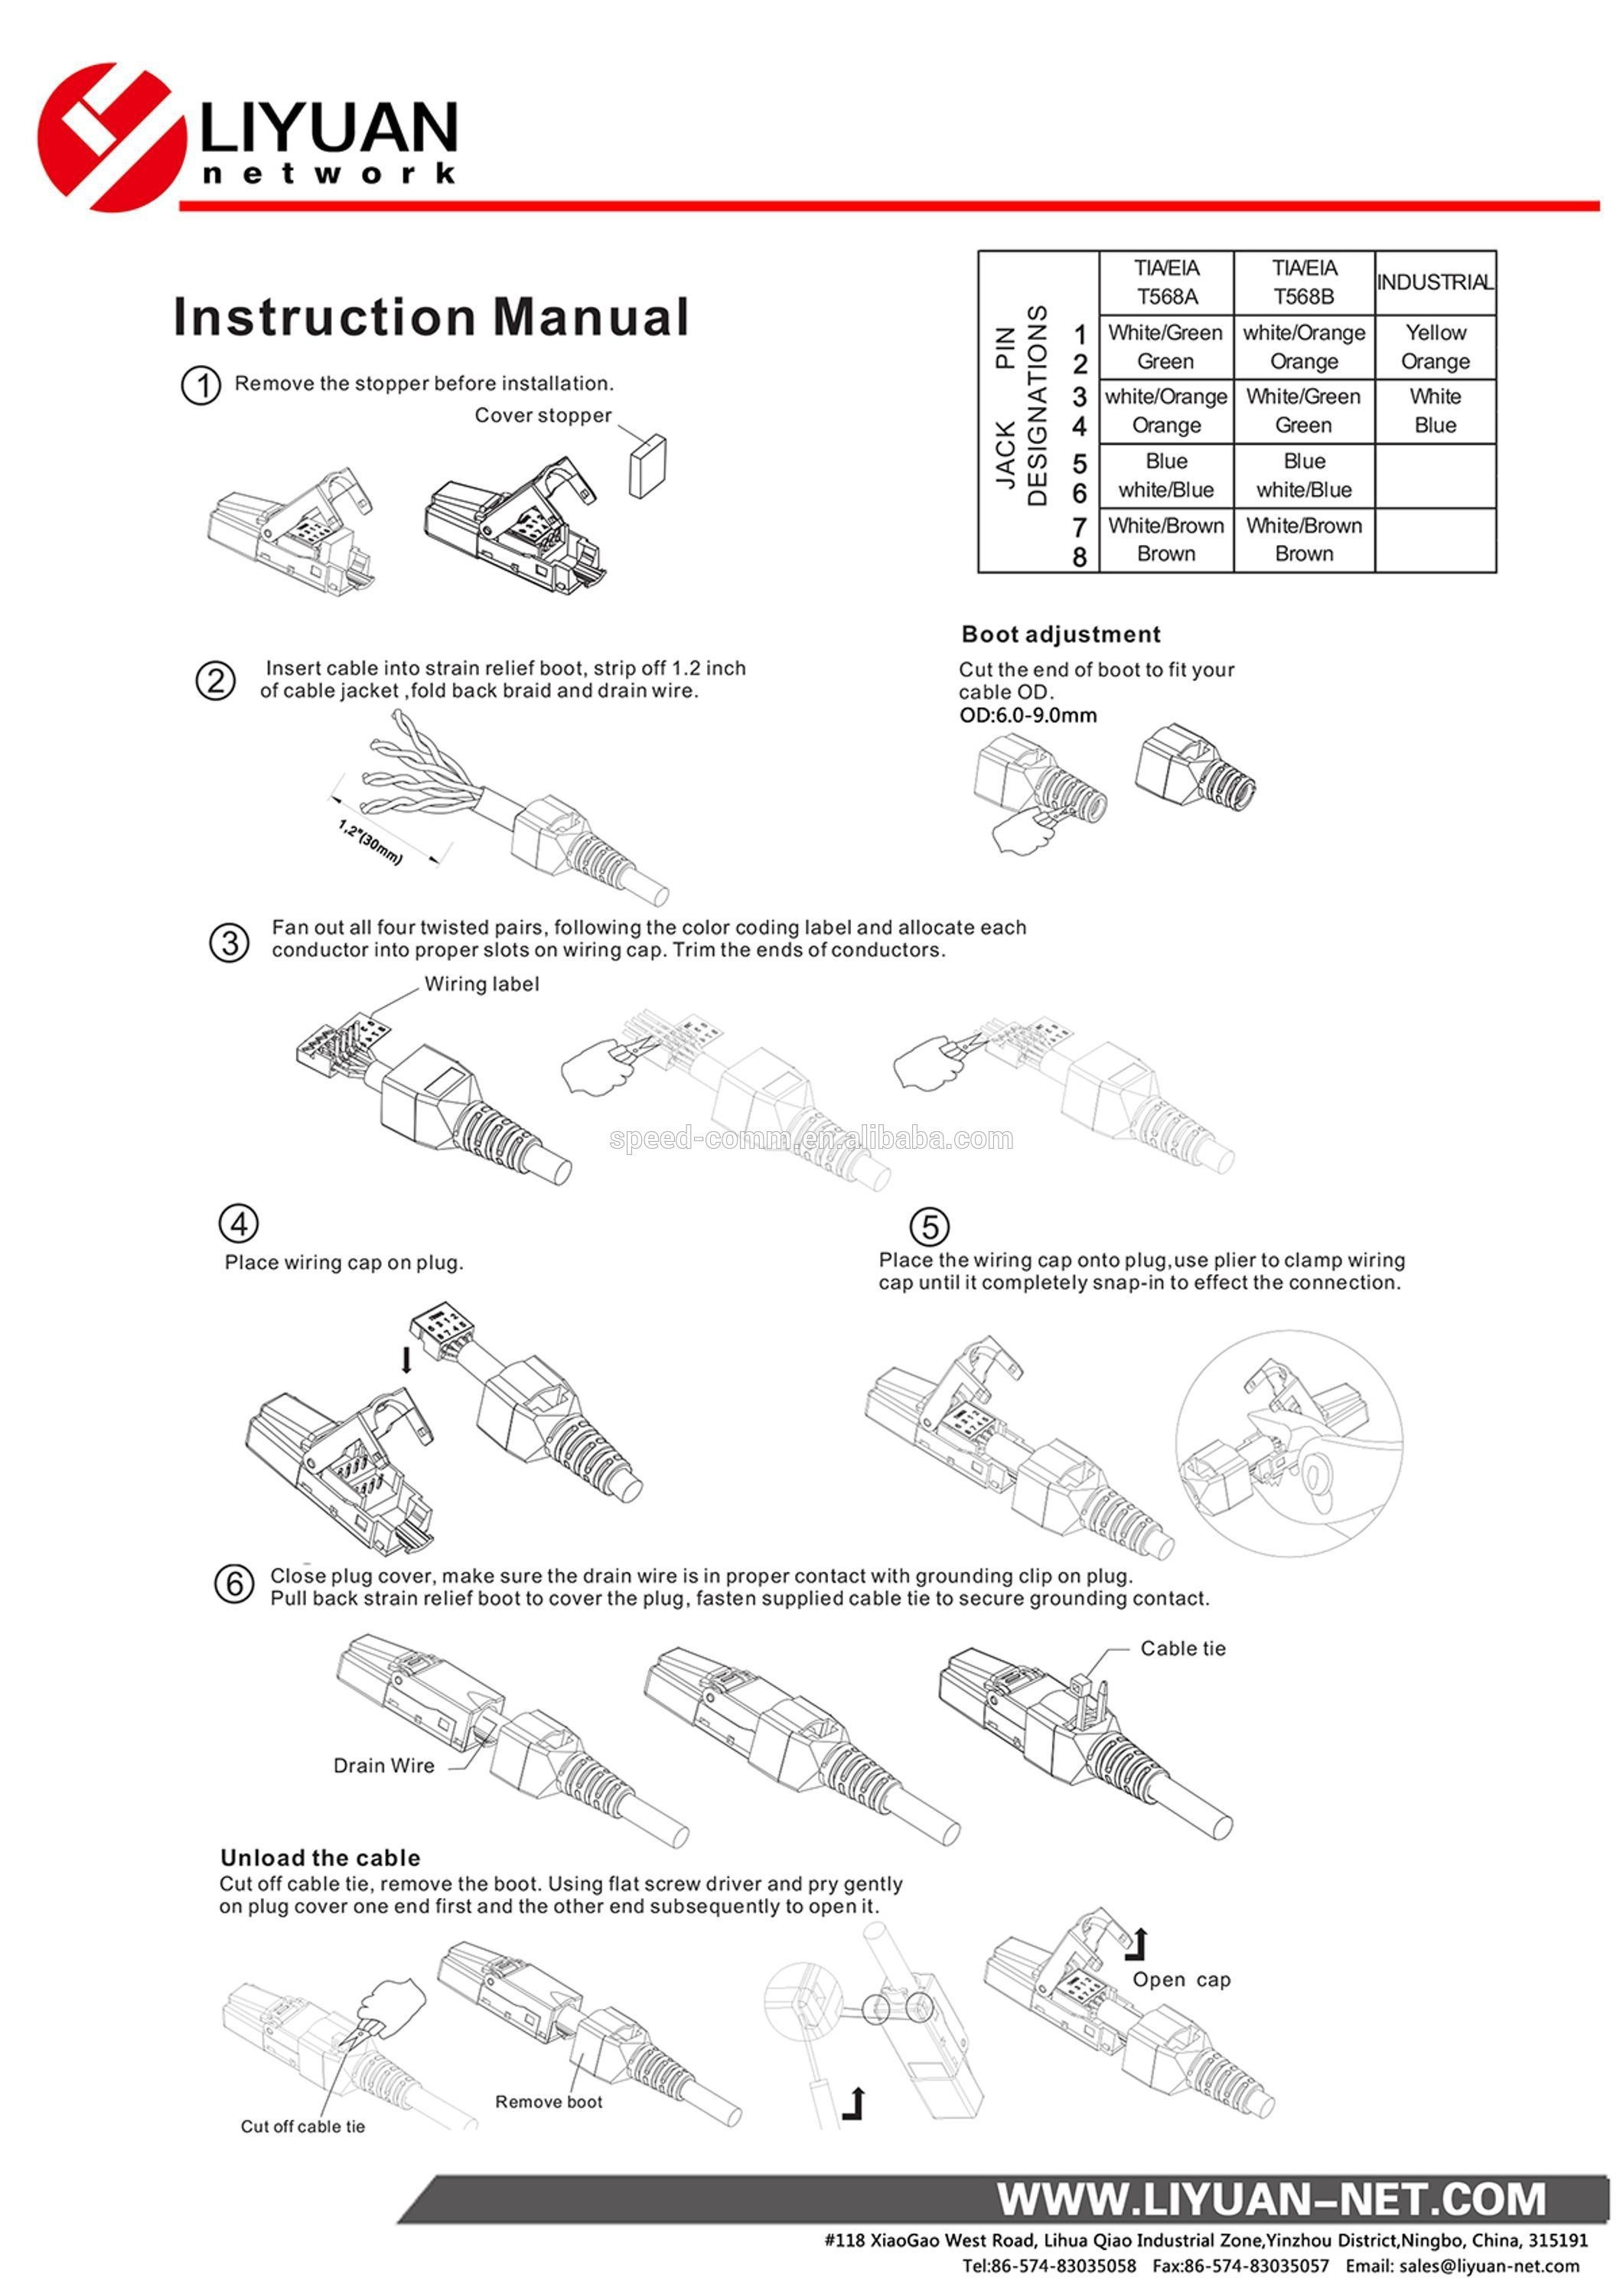 cat six wiring diagram Download-Wiring Diagram Color Legend Refrence Circuit Diagram Examples New Cat 6 Wiring Diagram New Tcs Wiring 1-n